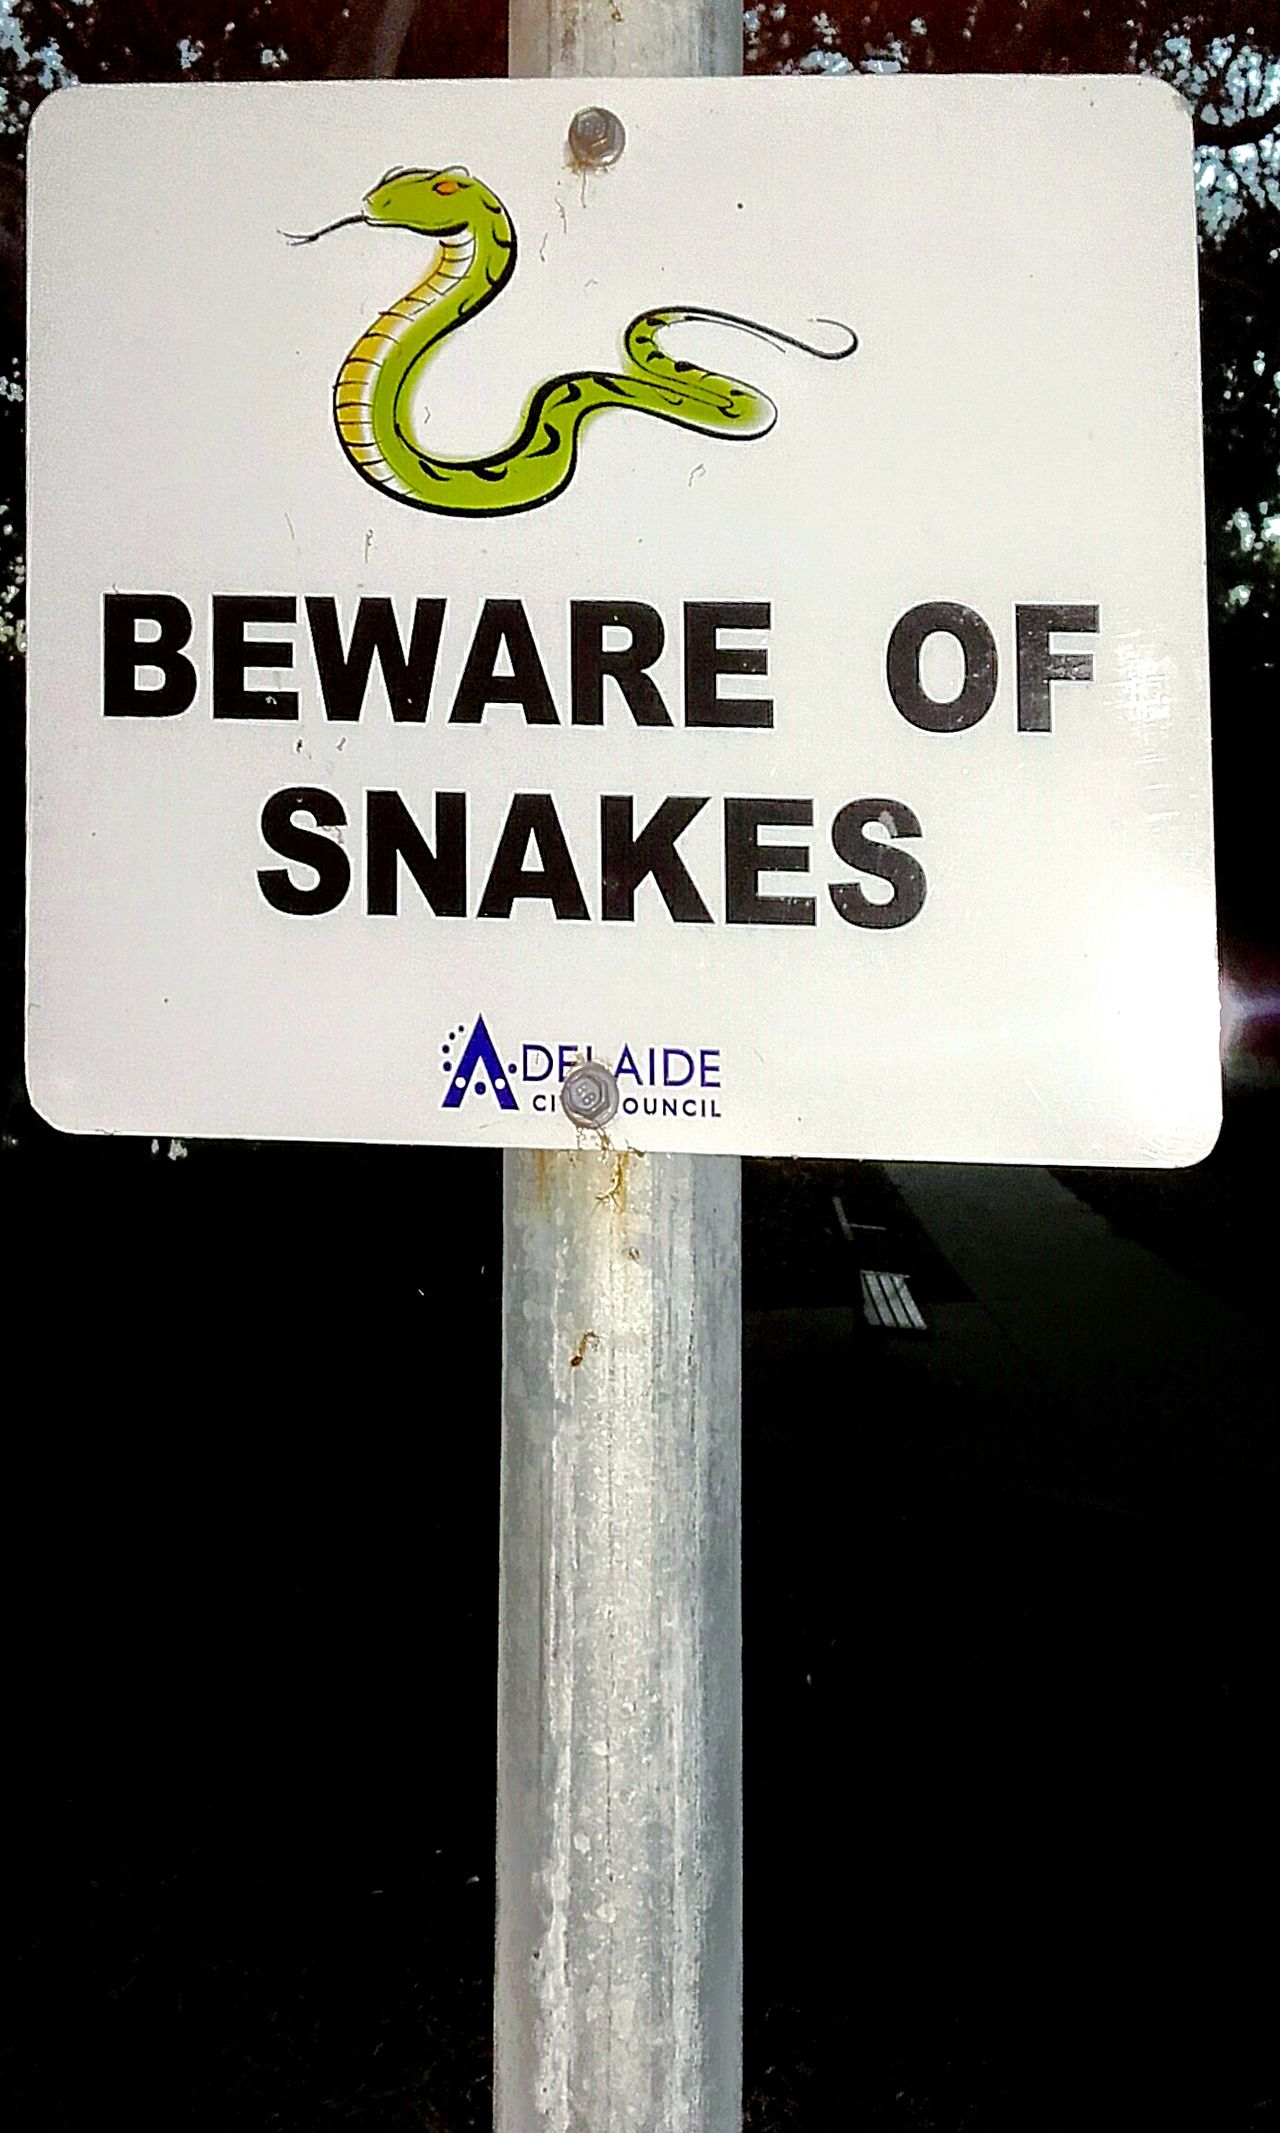 Text Street Photography Signpost Signs & More Signs Signage Signs Sign Signs_collection Streetphotography SignsSignsAndMoreSigns Signs, Signs, & More Signs Signs - Warnings Snakes Snake Beware Of Snakes Bewareofsnakes SIGN. Information Sign Signporn SignSignEverywhereASign SIGNS. Warning Sign Warning Signs  Danger Signs Danger Sign